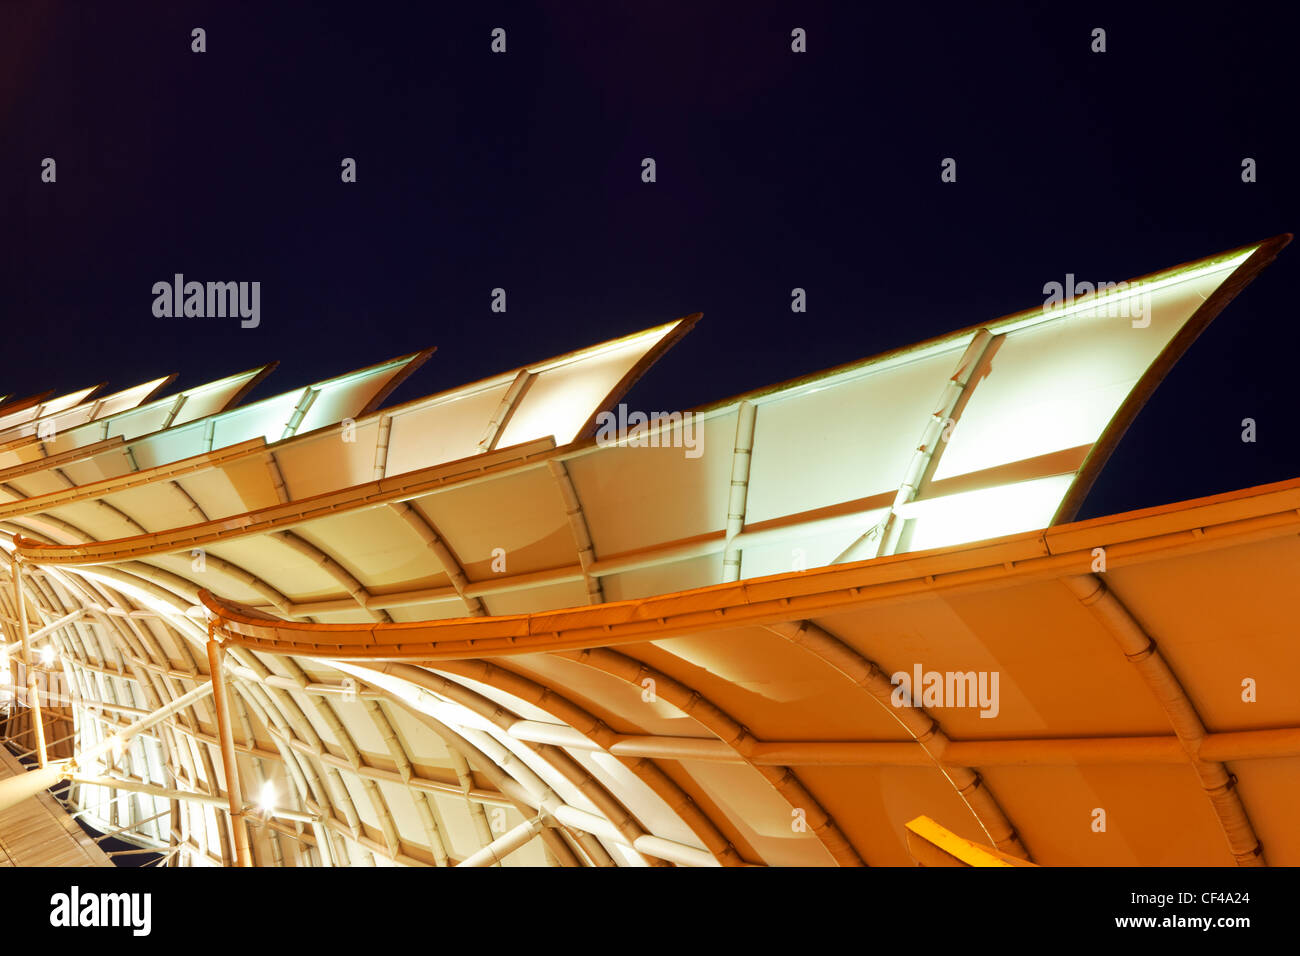 The Sainsburys sails, a functional building which forces wind up over the A38 road in Plymouth. - Stock Image